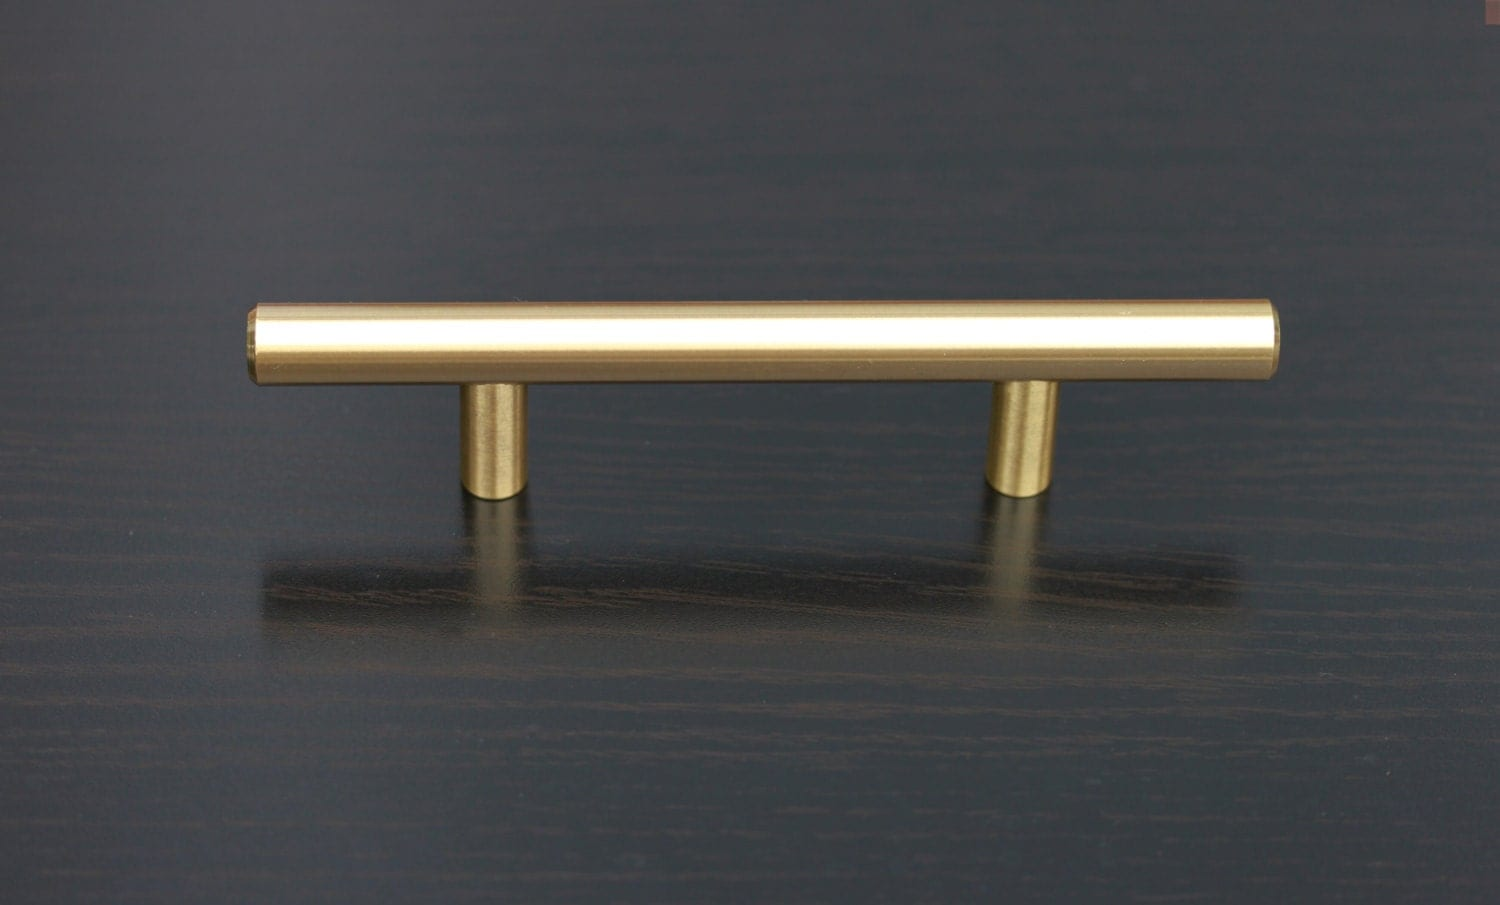 Satin Brass Cabinet Pulls Satin Brass Cabinet Hardware Euro Style Bar Handle Pull 96mm 3